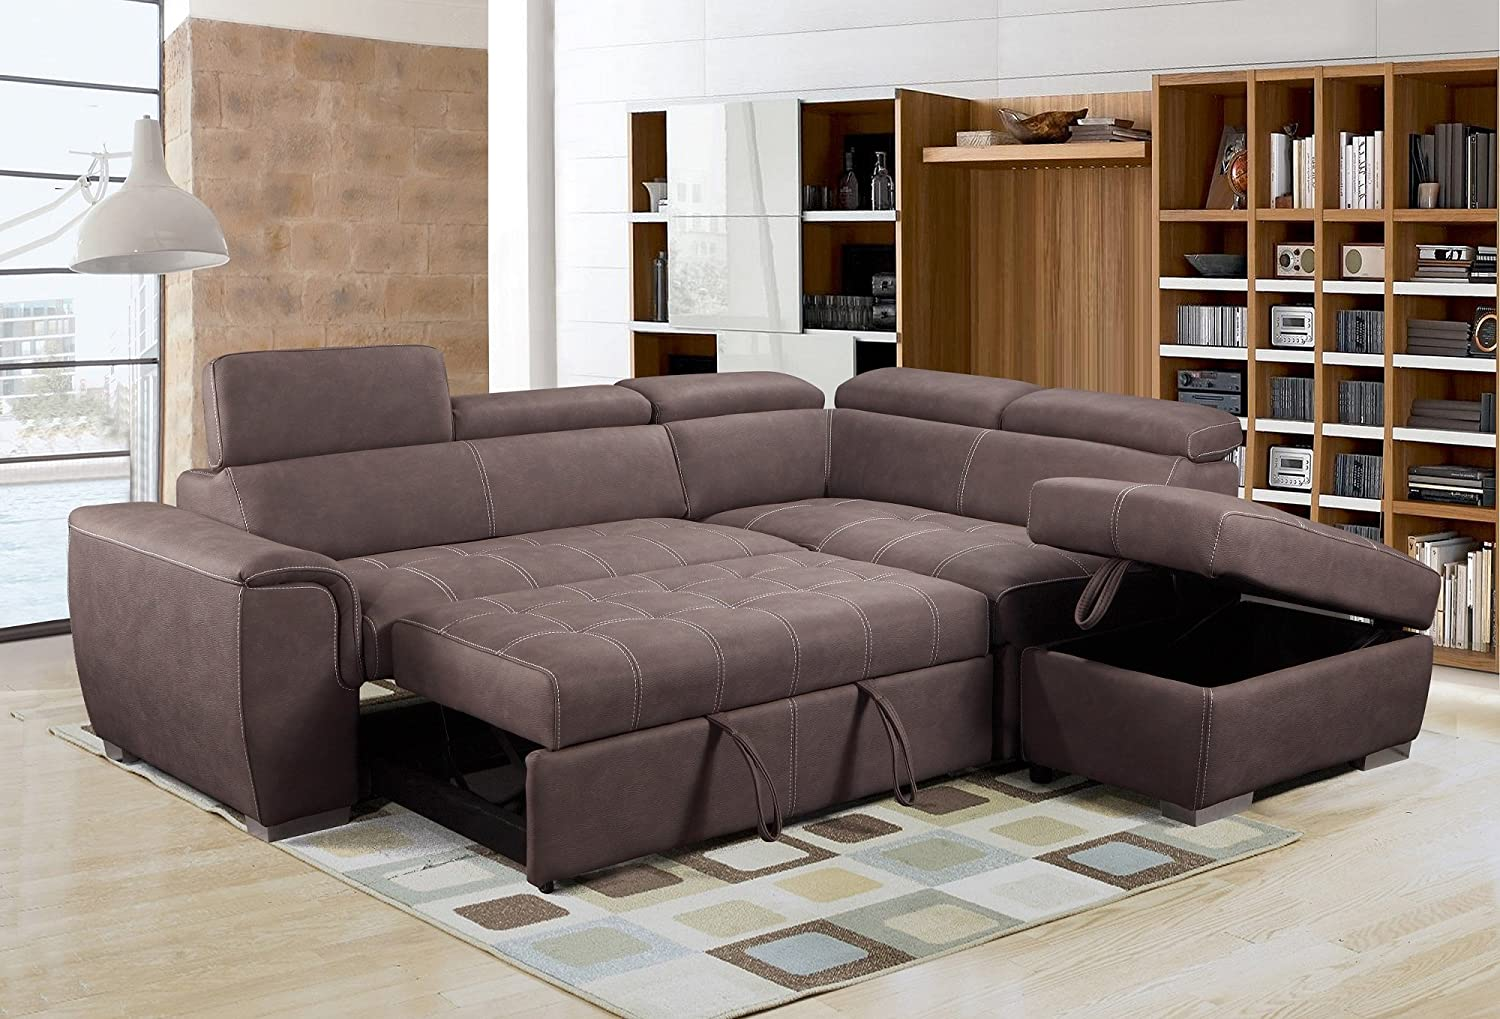 Rienzo Large Brown Fabric Suede Corner Sofa Bed With Tilting Headrest And Storage Ottoman (Right Hand Facing): Amazon.co.uk: Kitchen & Home